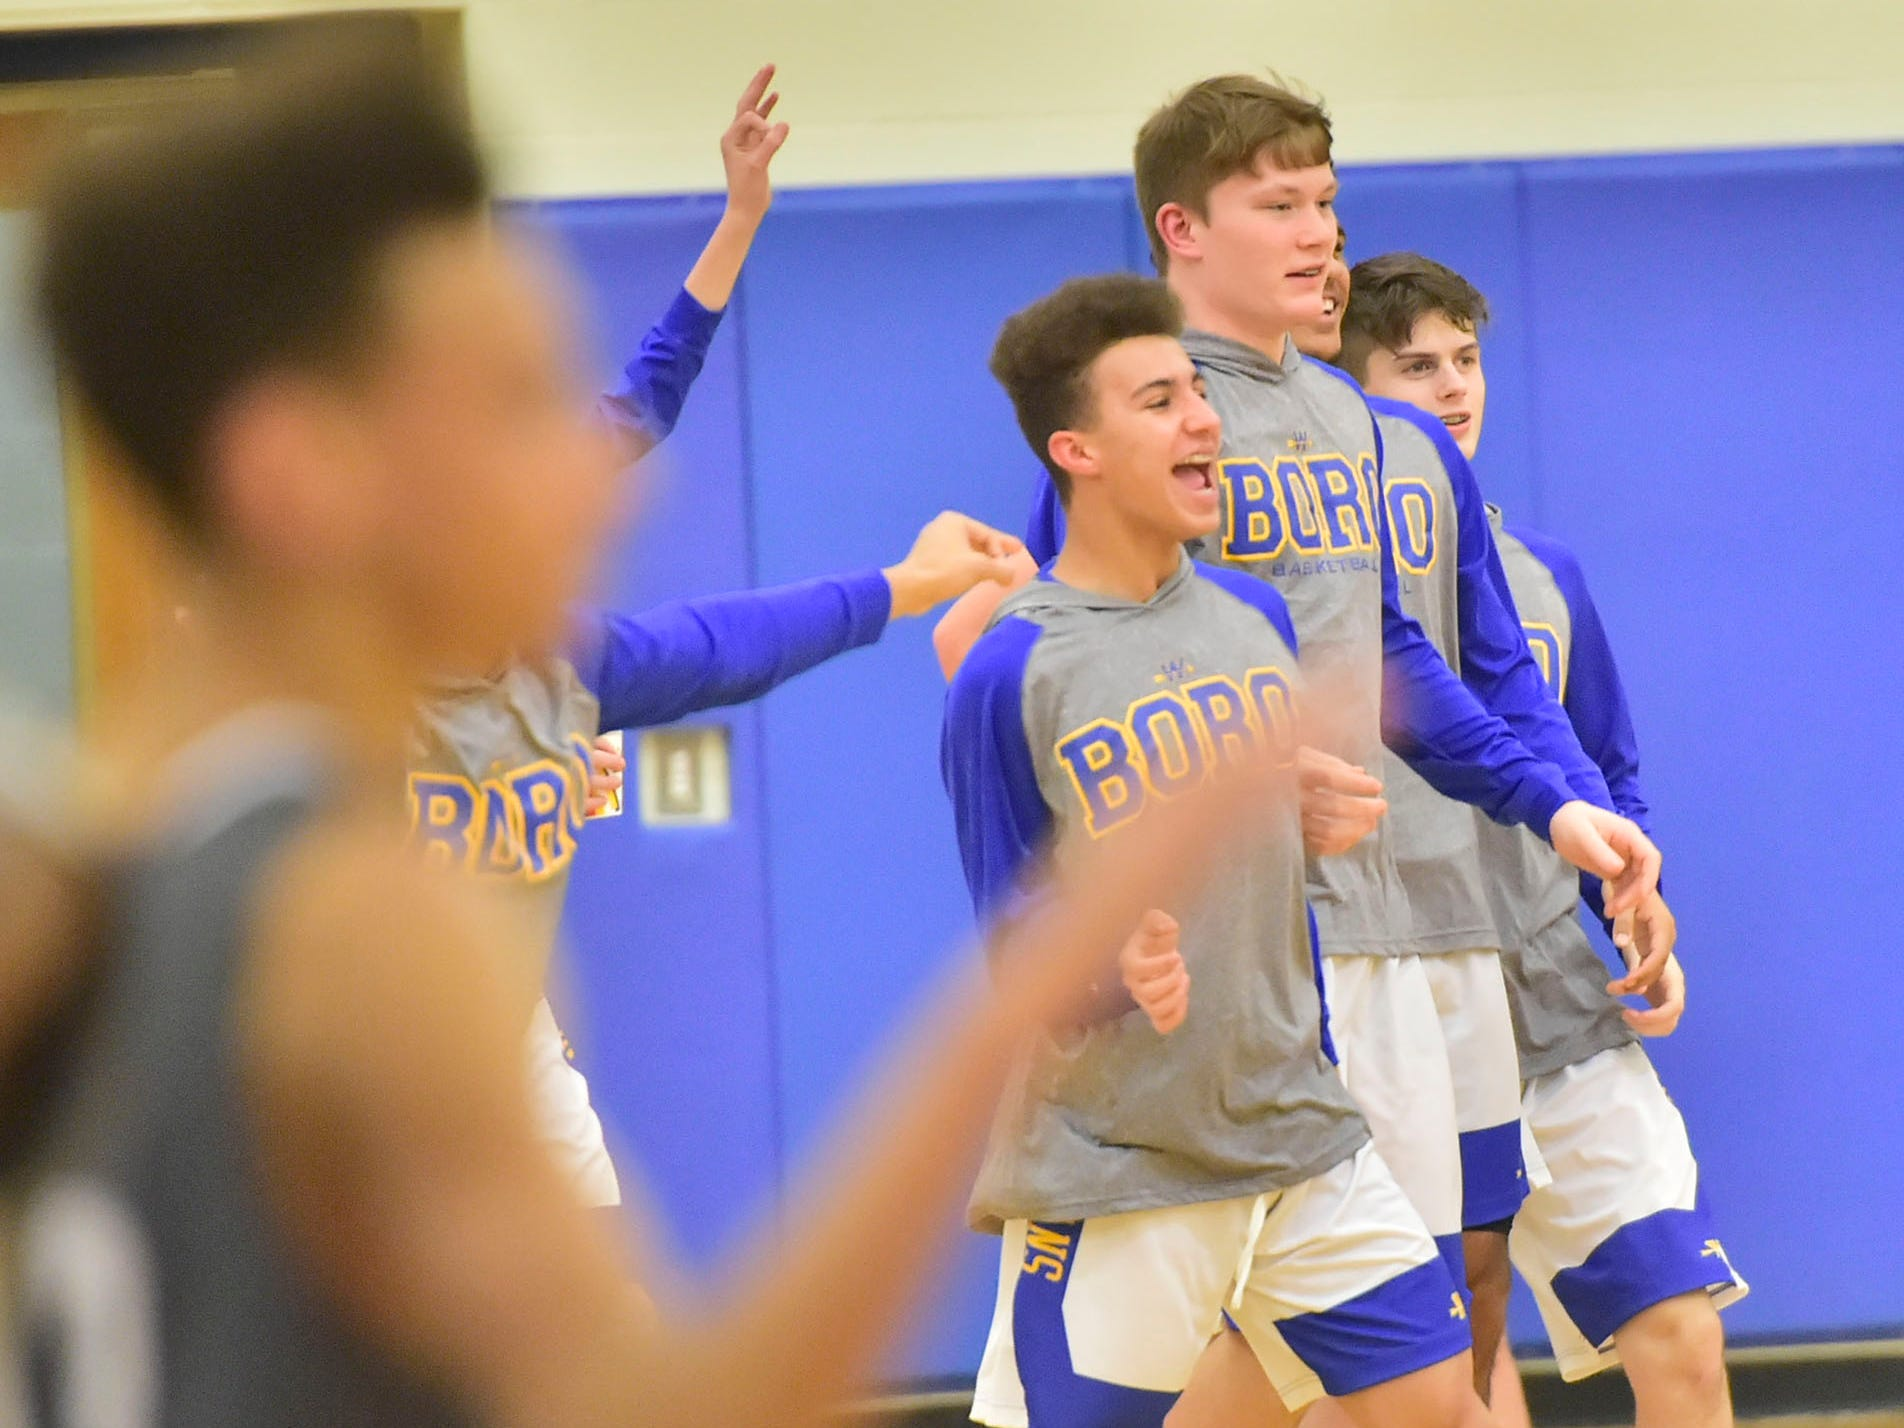 Indian teammates celebrate on Tuesday, December 18, 2018. Waynesboro defeated Shippensburg 72-59 during a home game.